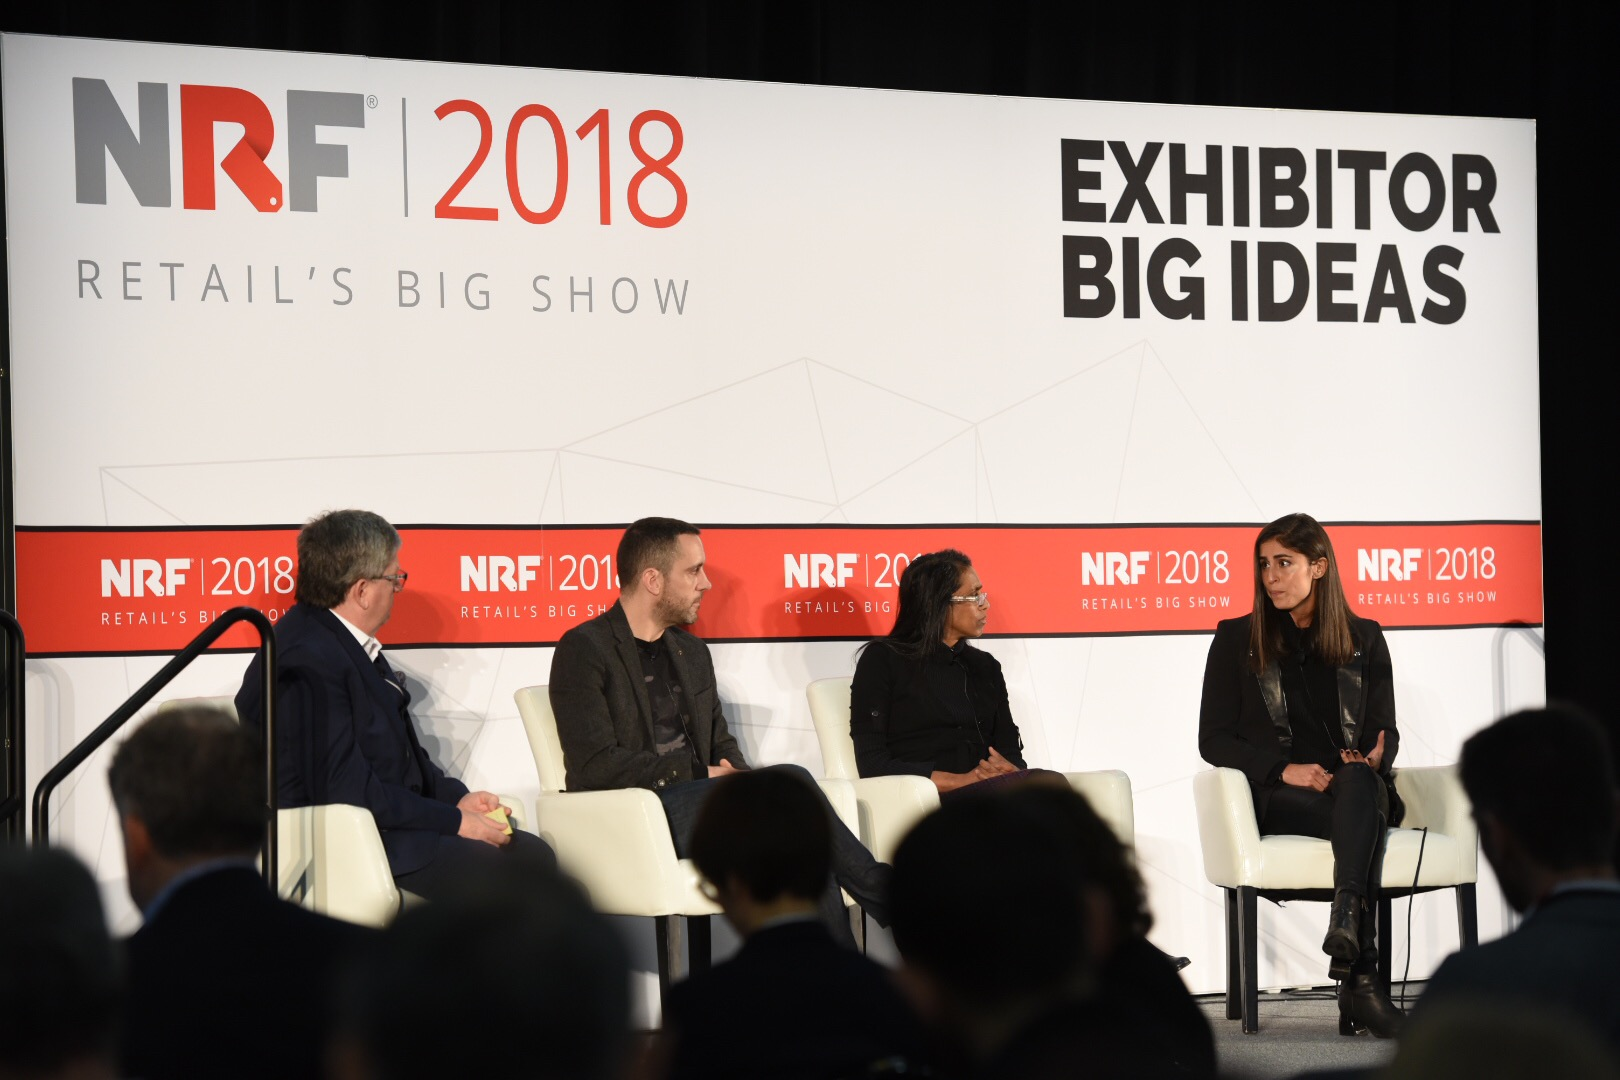 Exhibitor Big Ideas | NRF 2020: Retail's Big Show & EXPO